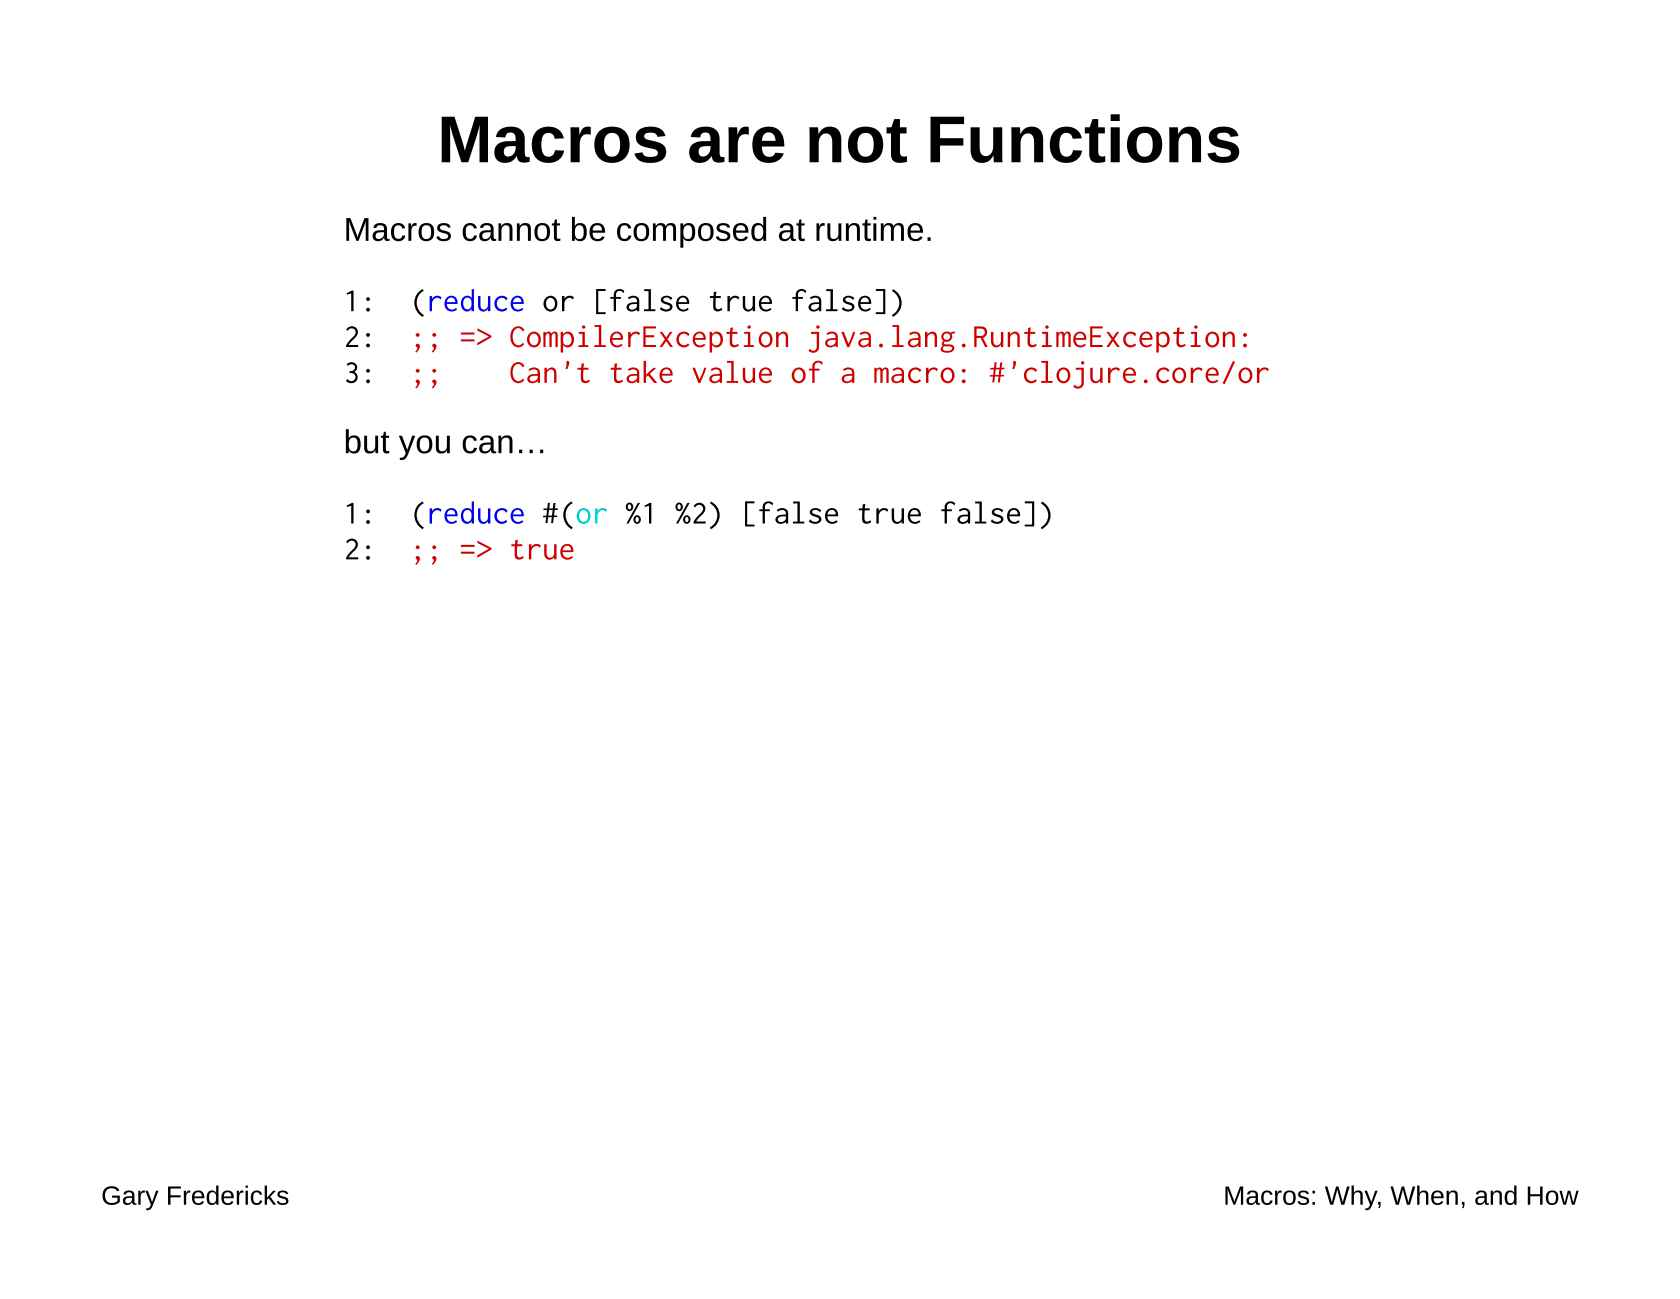 Macros: Why, When, and How